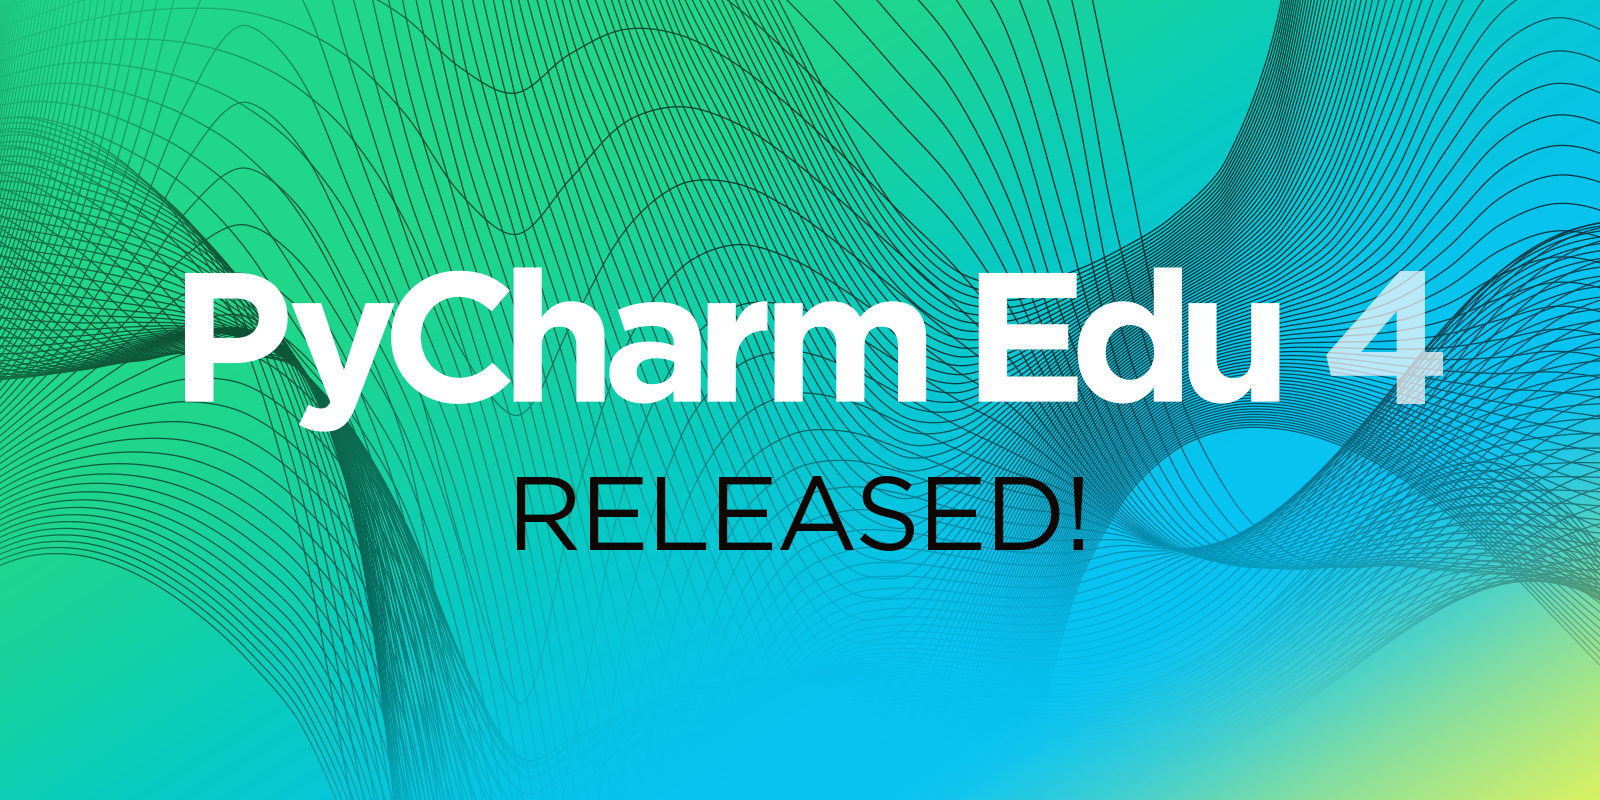 PyCharm 4 is out